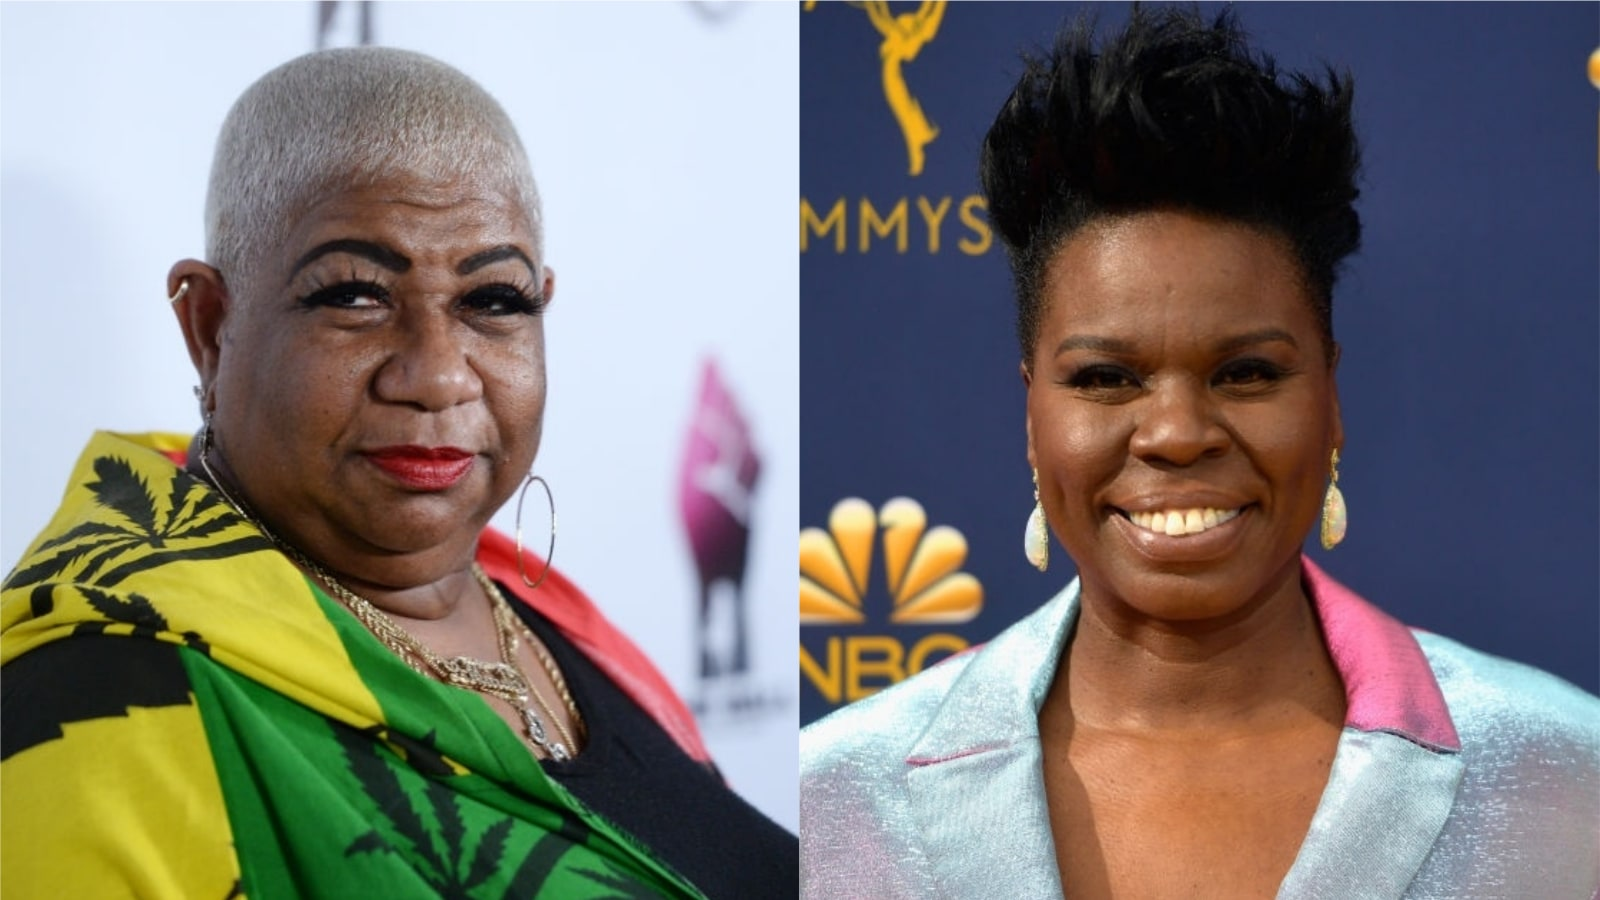 We Were Today Years Old When We Discovered Luenell And Leslie Jones Had Beef But It's Already Been Squashed